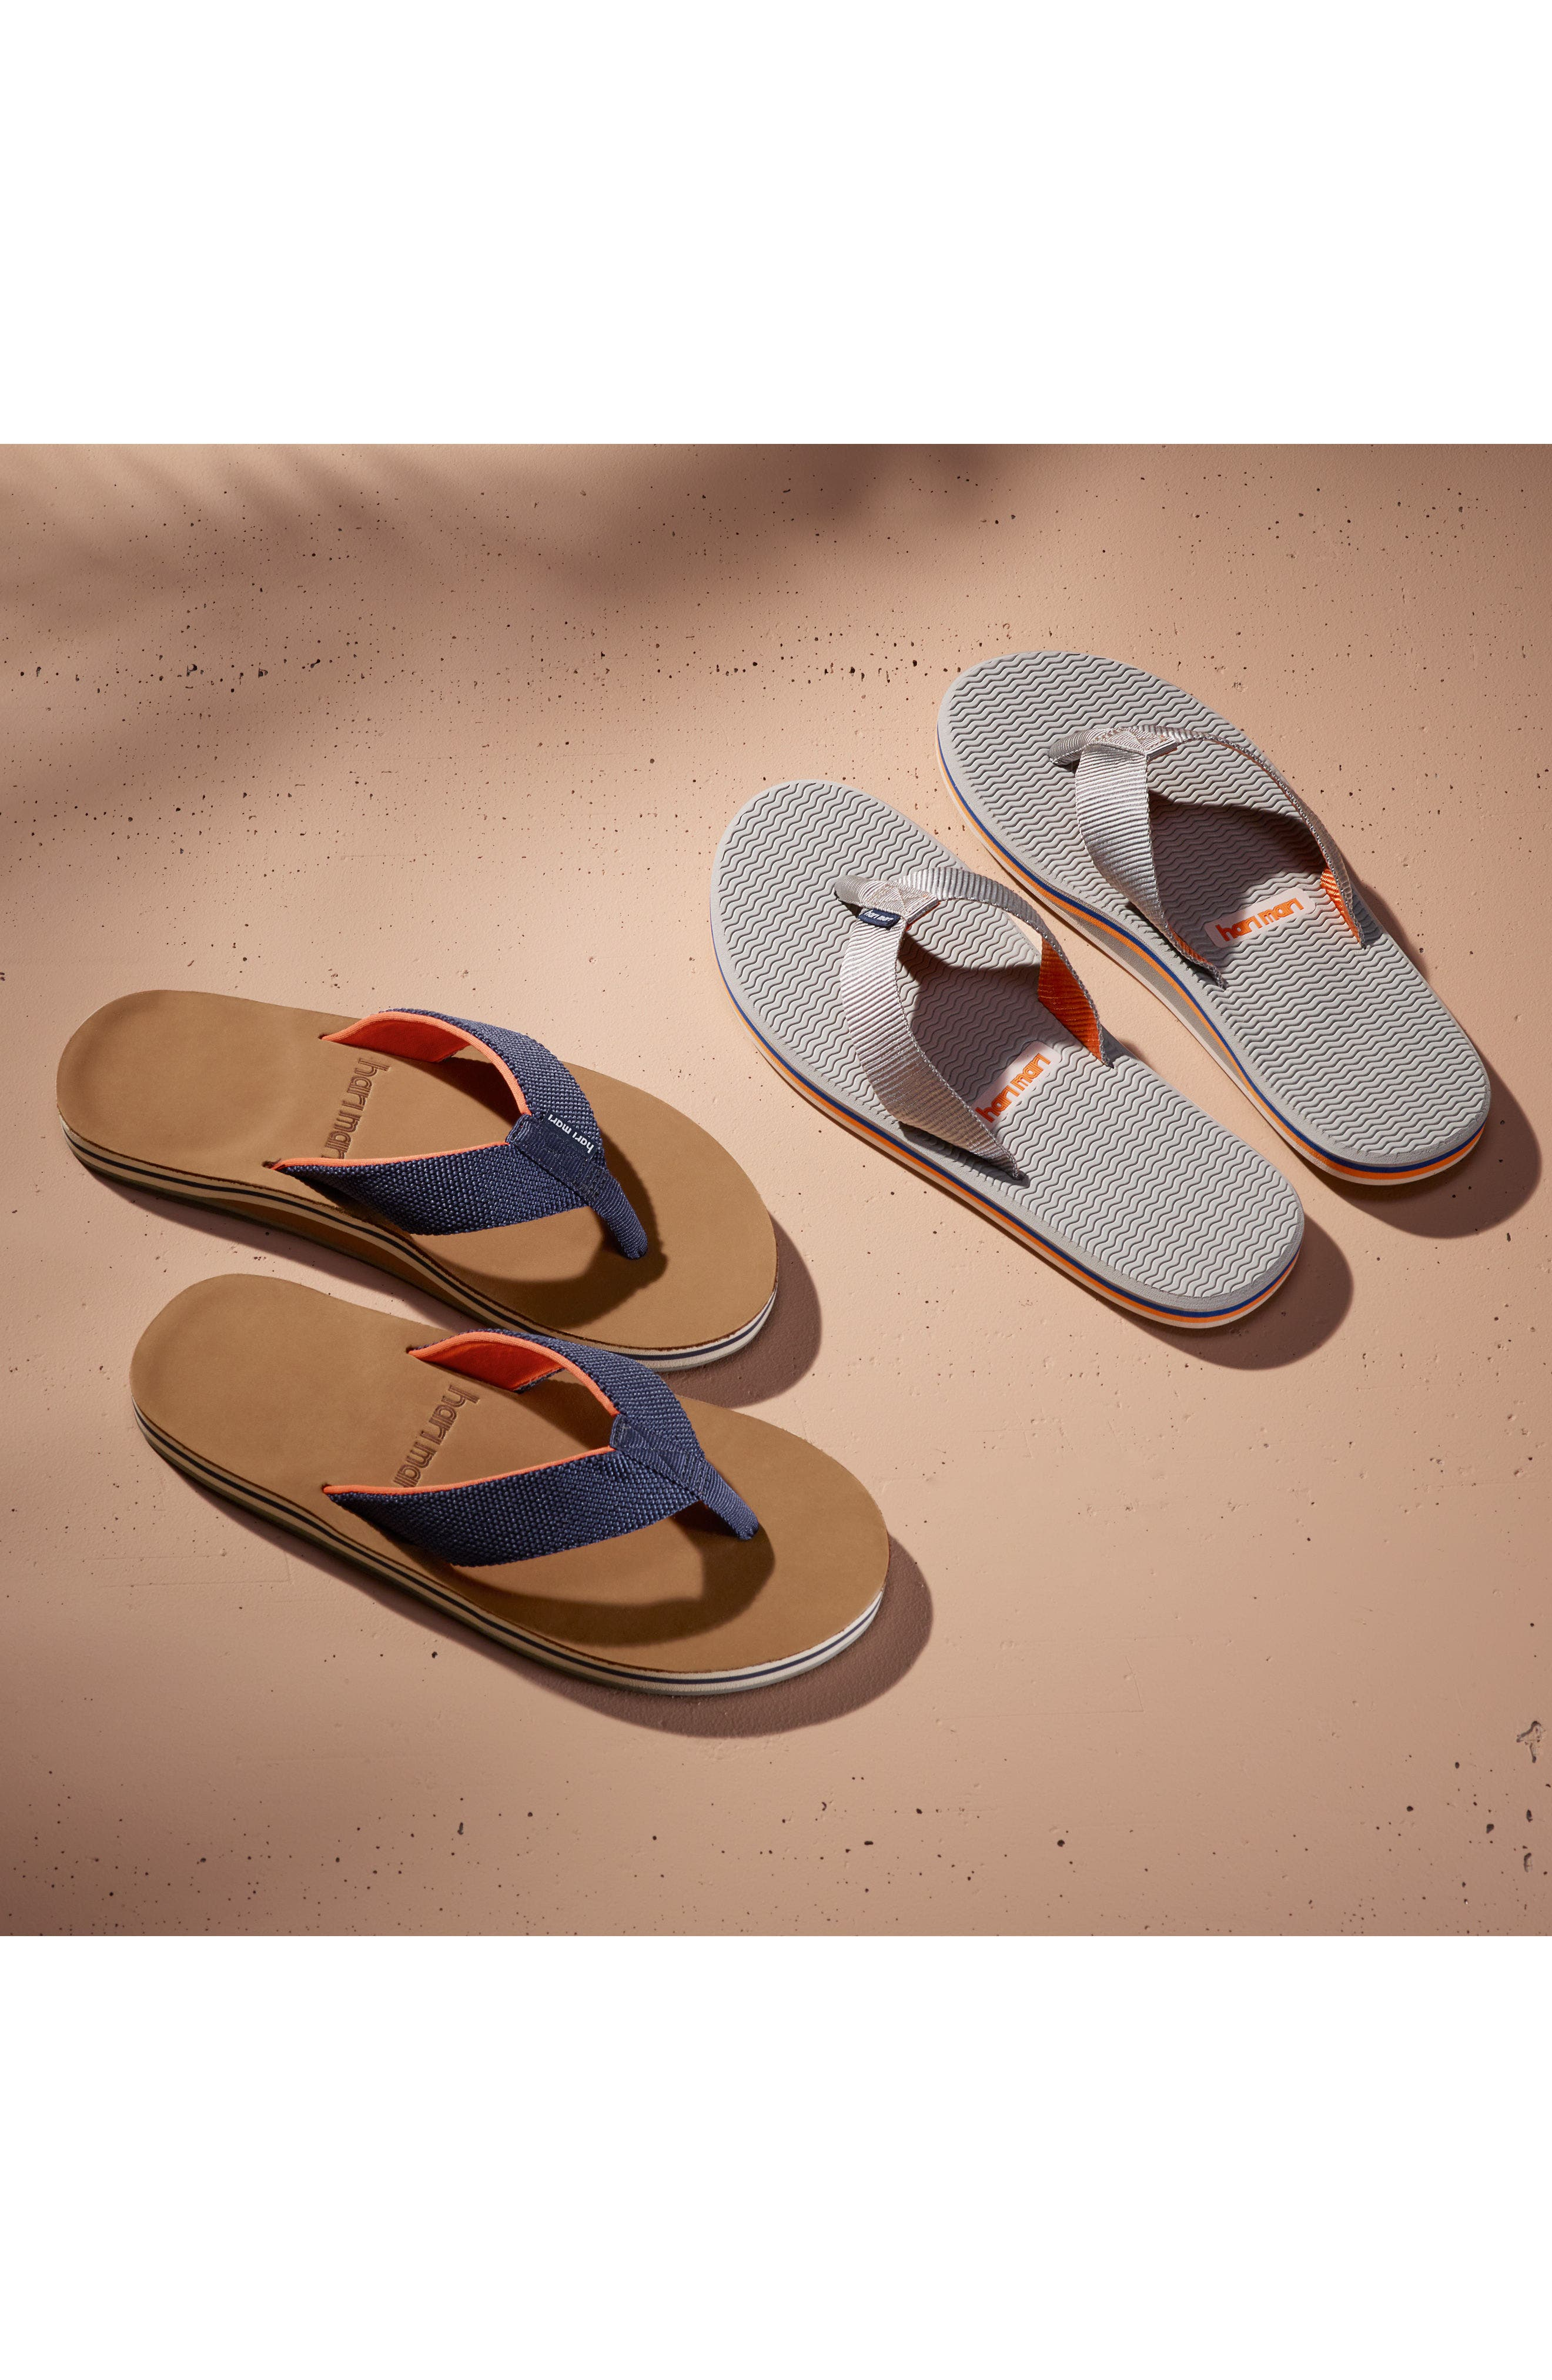 'Dunes' Flip Flop,                             Main thumbnail 1, color,                             011